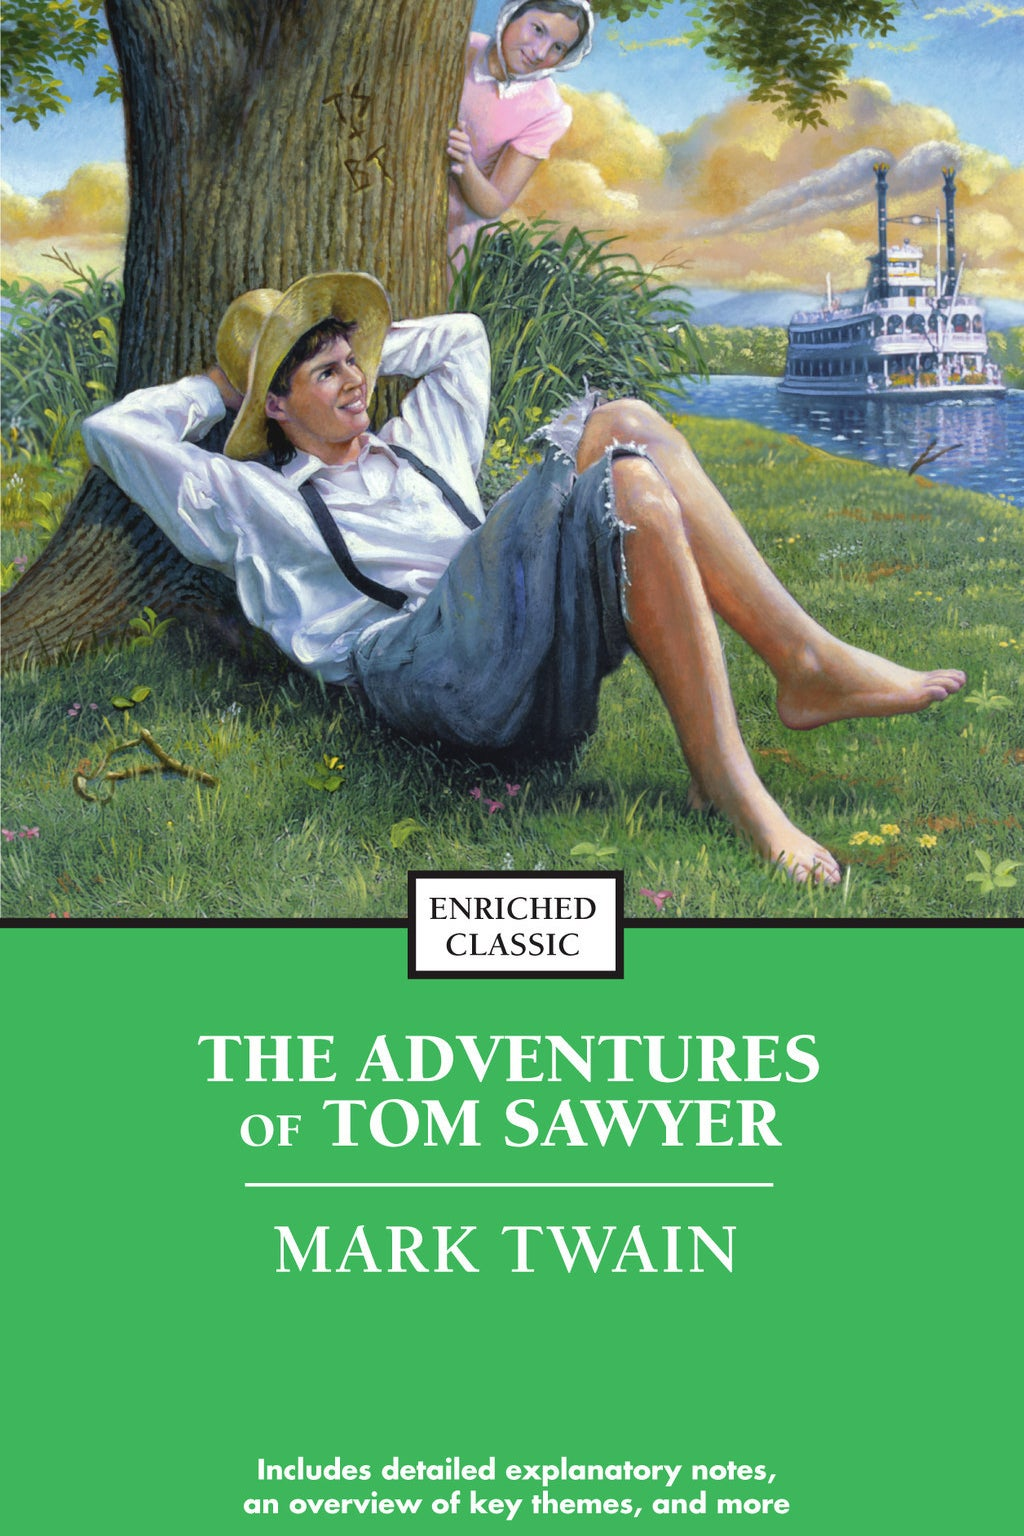 a review of samuel clemens the adventures of tom sawyer The adventures of tom sawyer by samuel l clemens, 1931 be the first to write a review the adventures of tom sawyer, a complete edition of the famous story by.